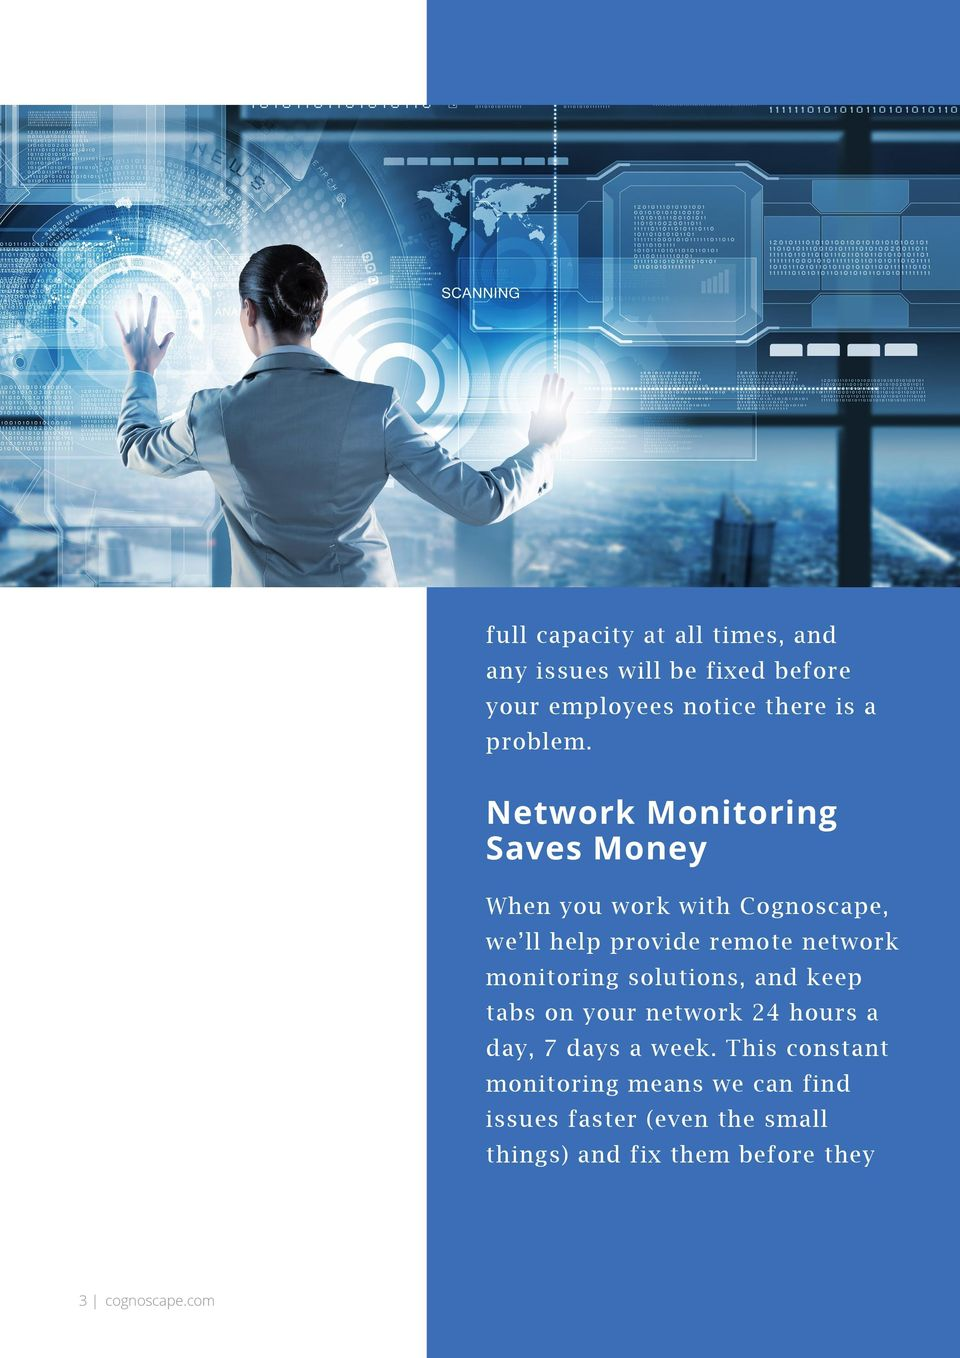 Network Monitoring Saves Money When you work with Cognoscape, we ll help provide remote network